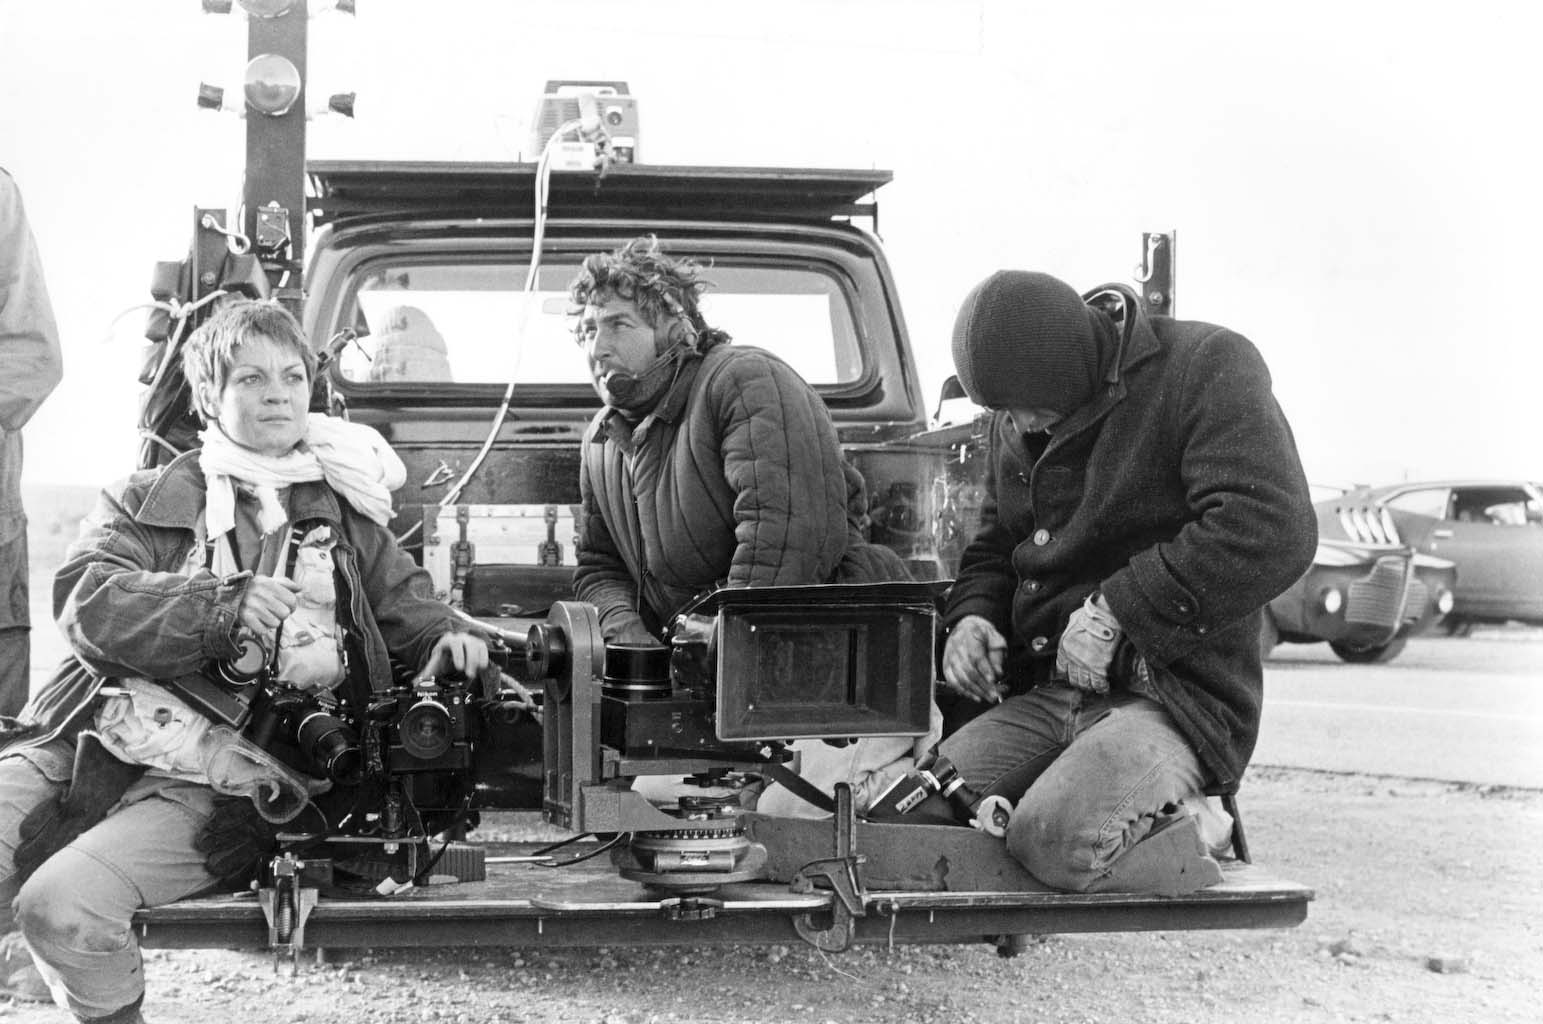 1981 on set of Mad Max 2 in Broken Hill. Australia.